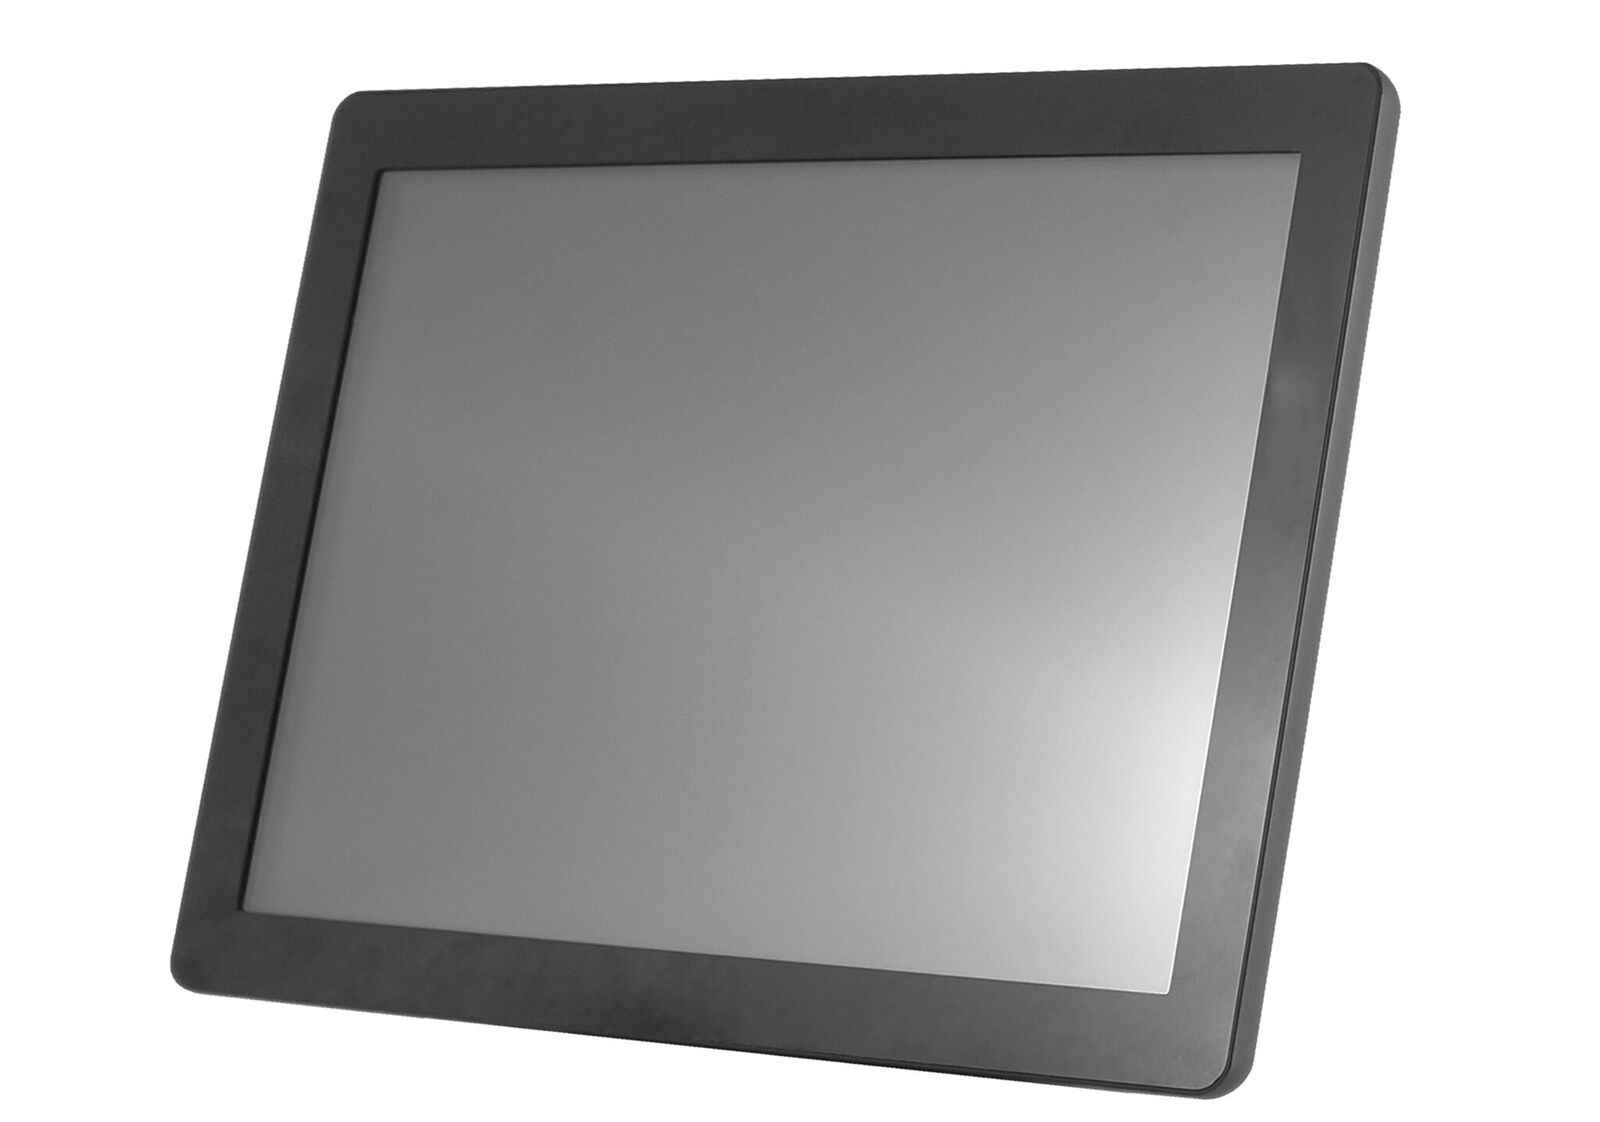 "10"" Glass display - 800x480, 250nt, USB"